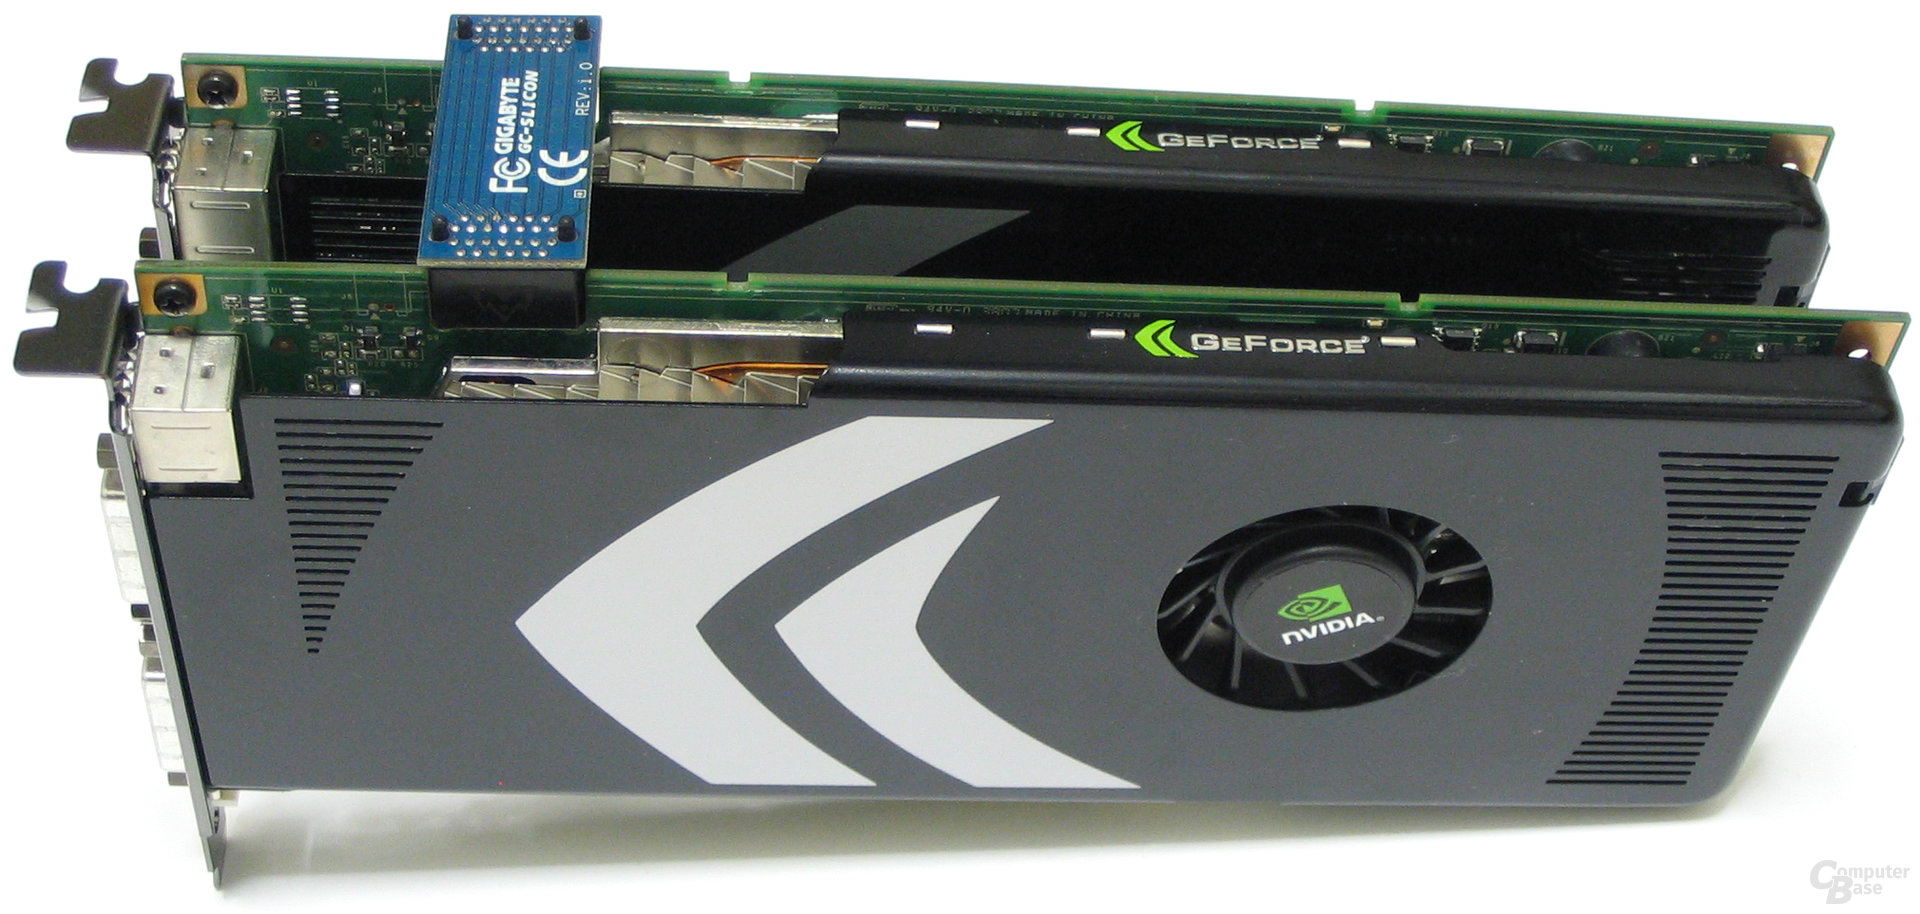 Nvidia GeForce 8800 GT SLI